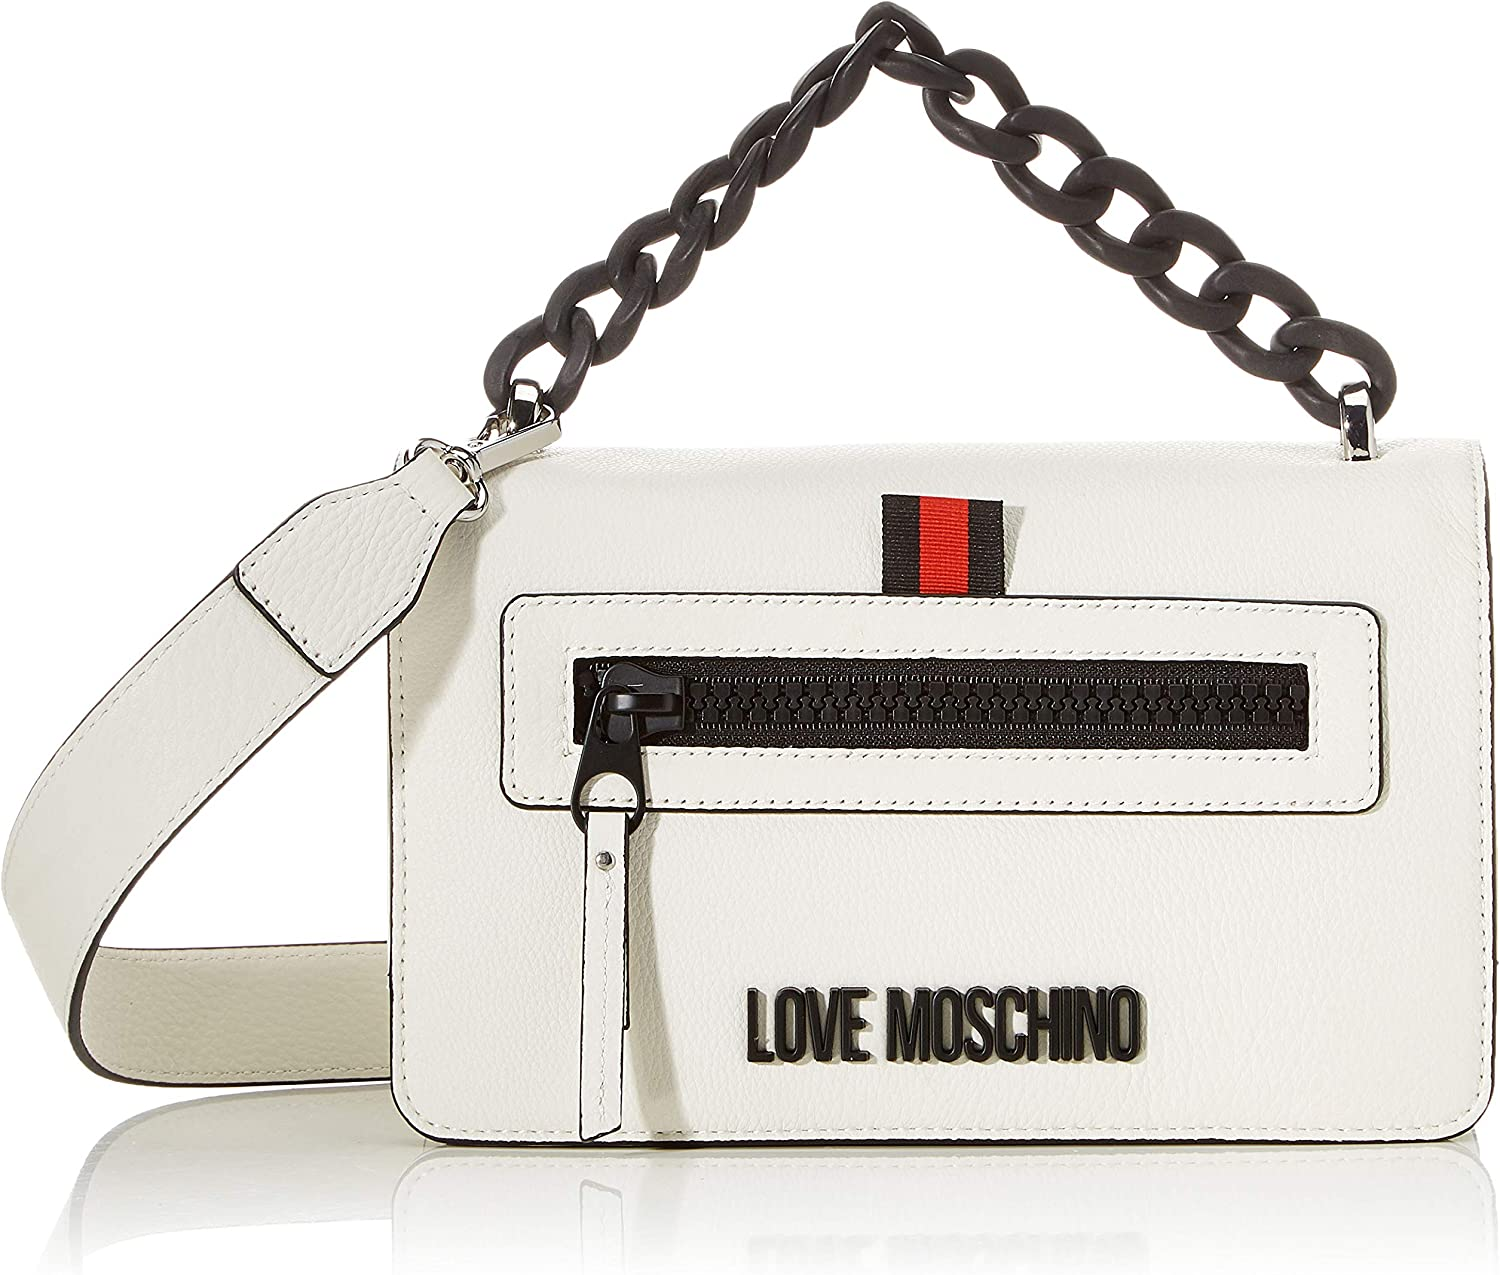 Love Moschino Womens Jc4066pp1a Top-Handle Bag